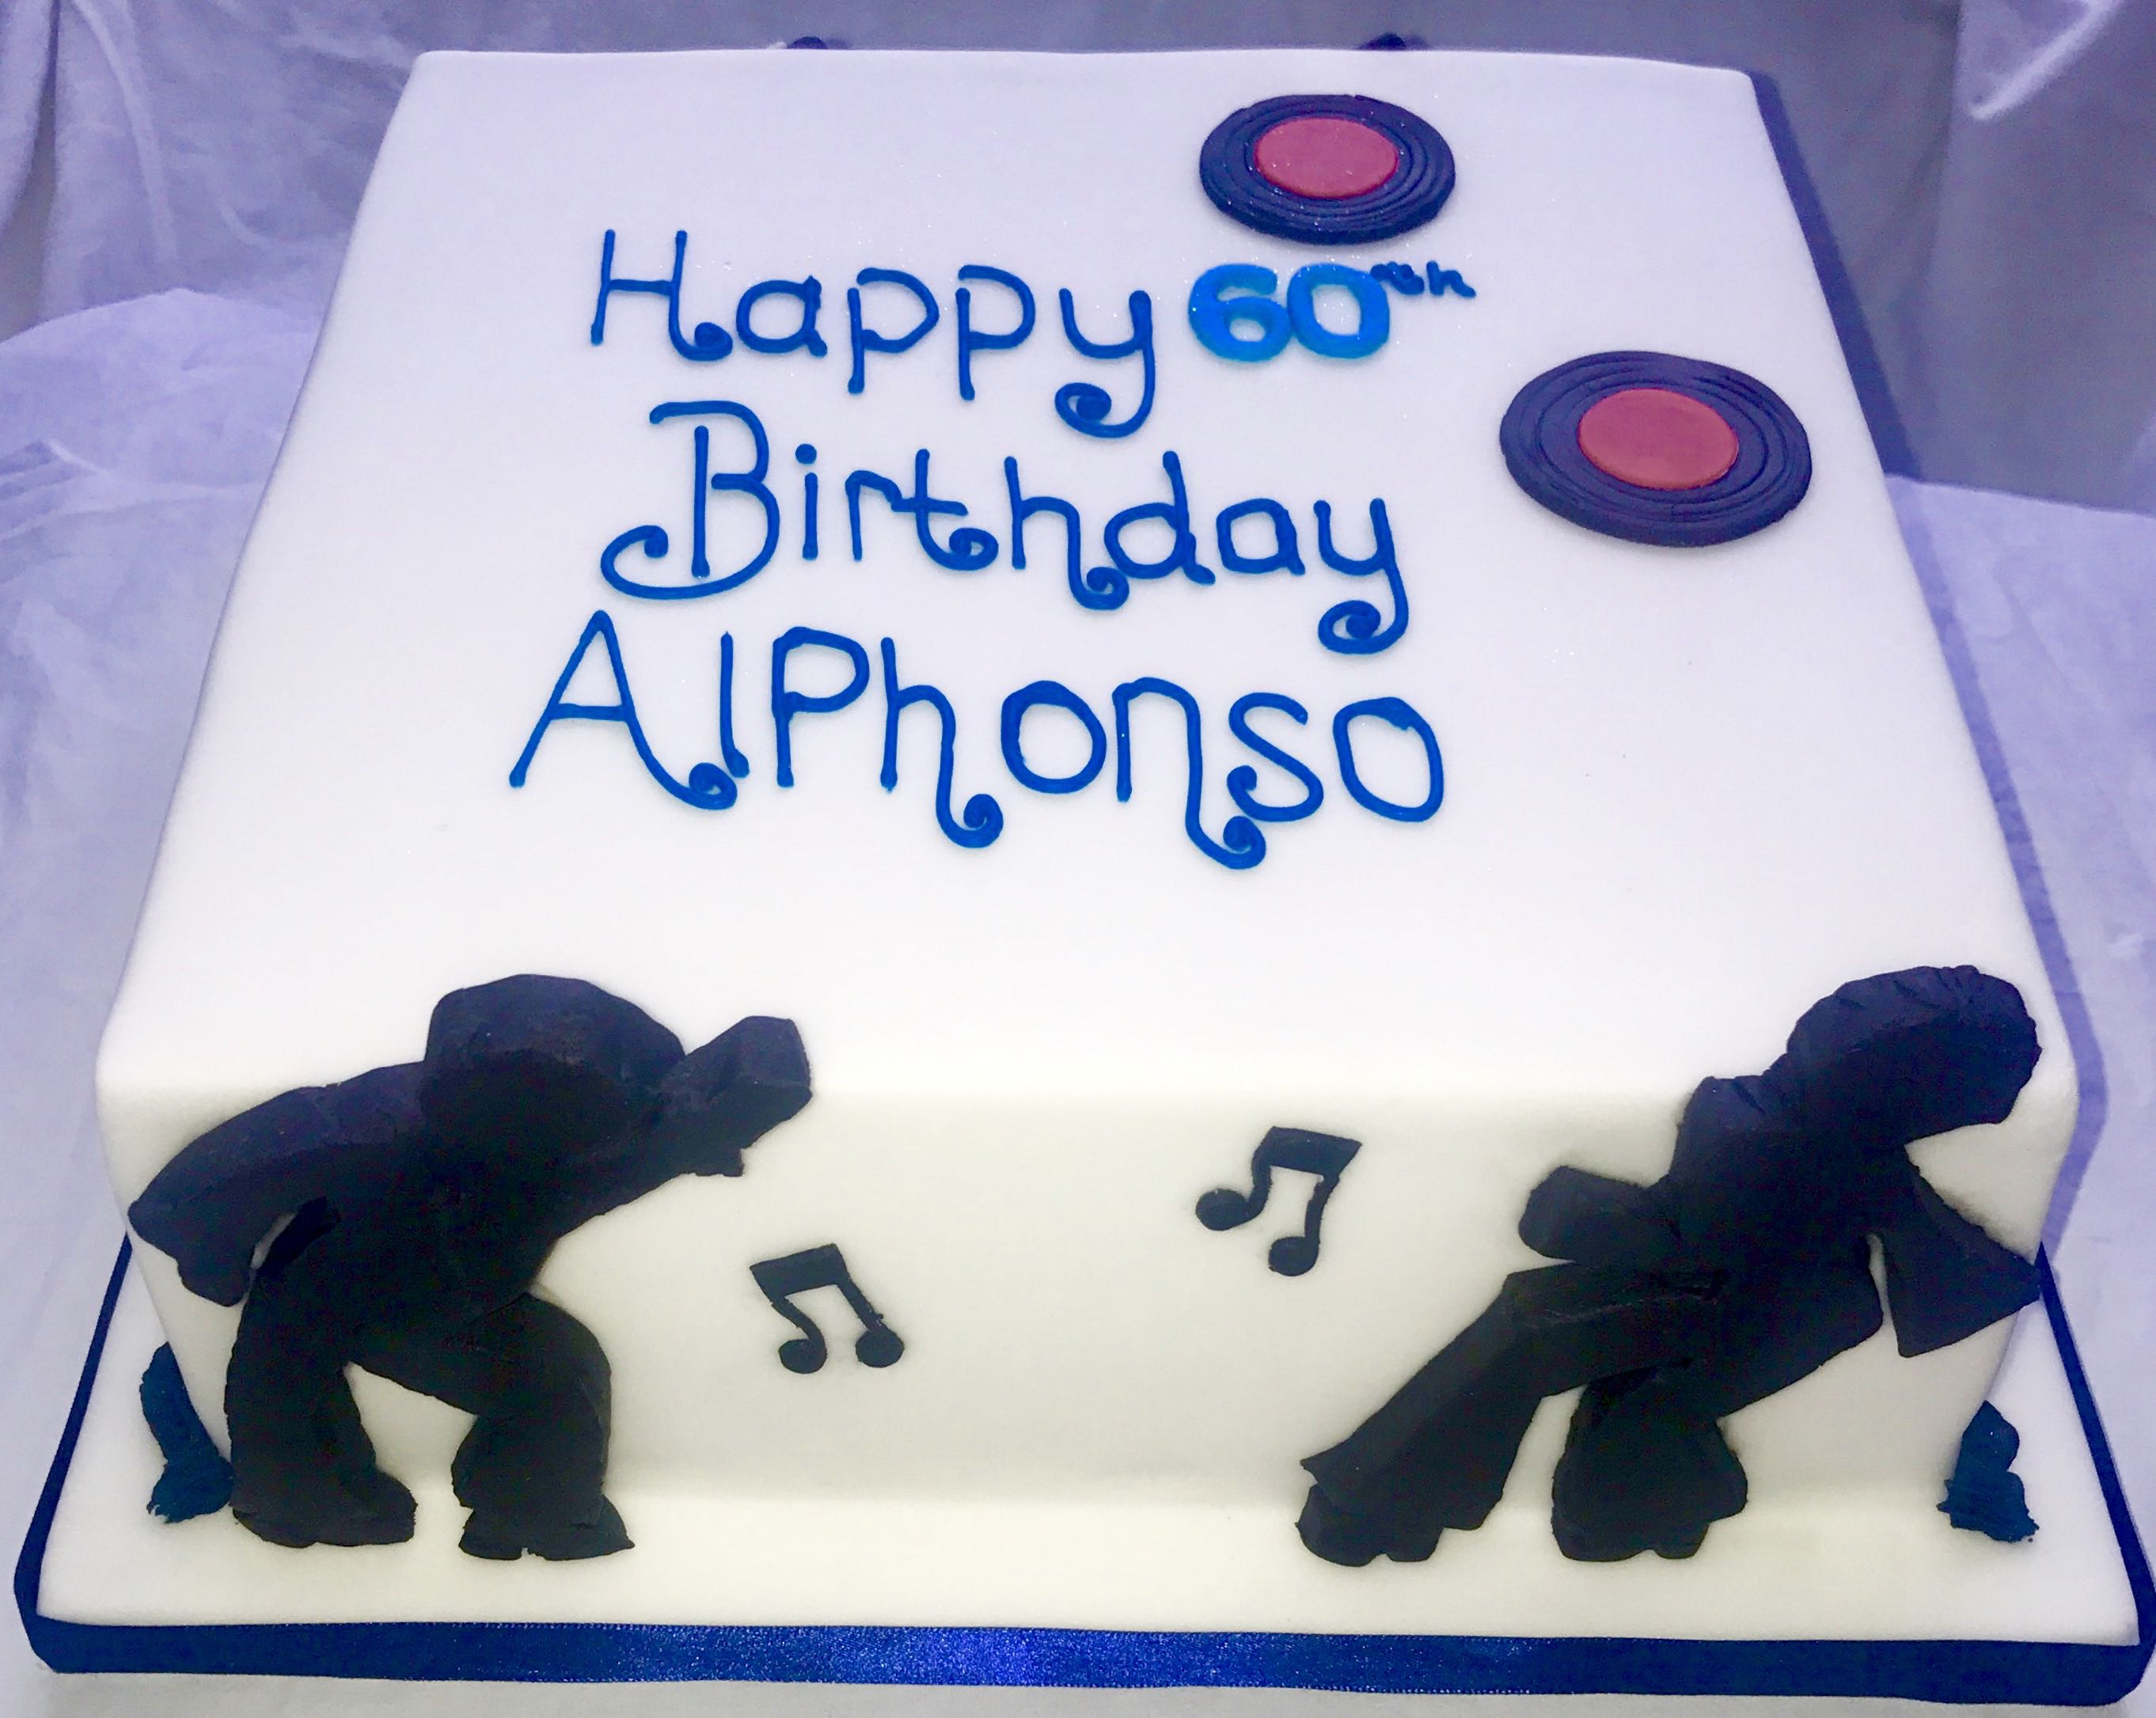 60th Birthday Dancing Figures Cake